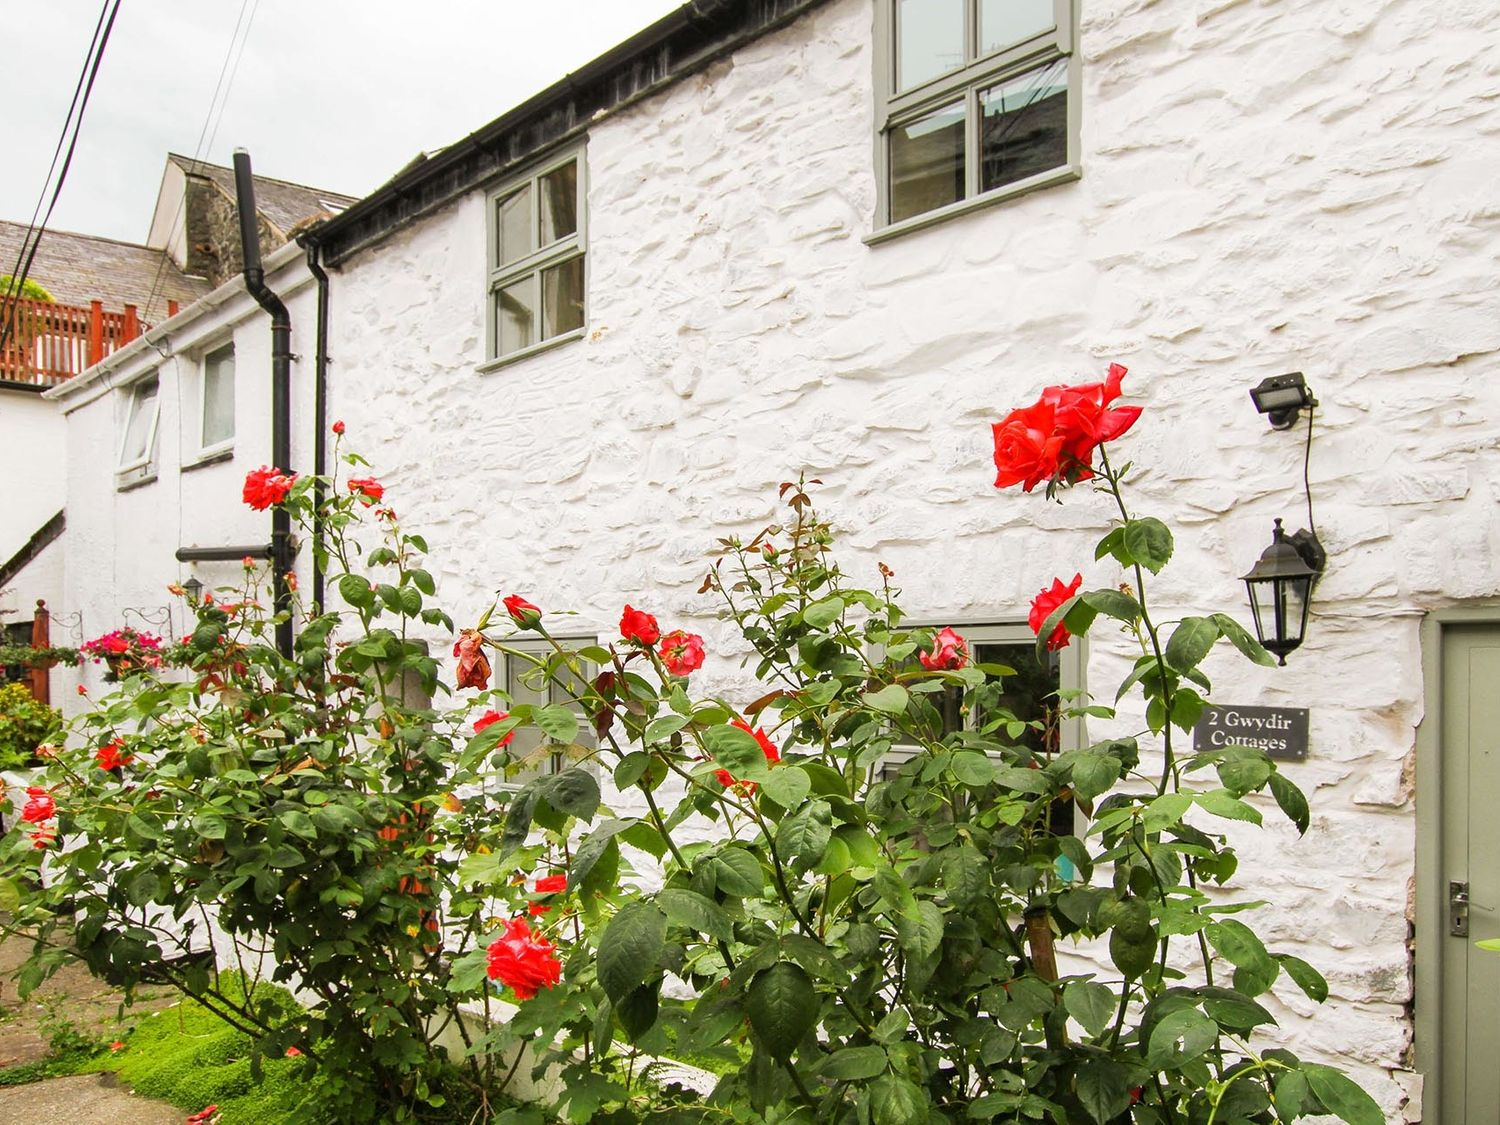 2 Gwydir Cottages - North Wales - 1008855 - photo 1